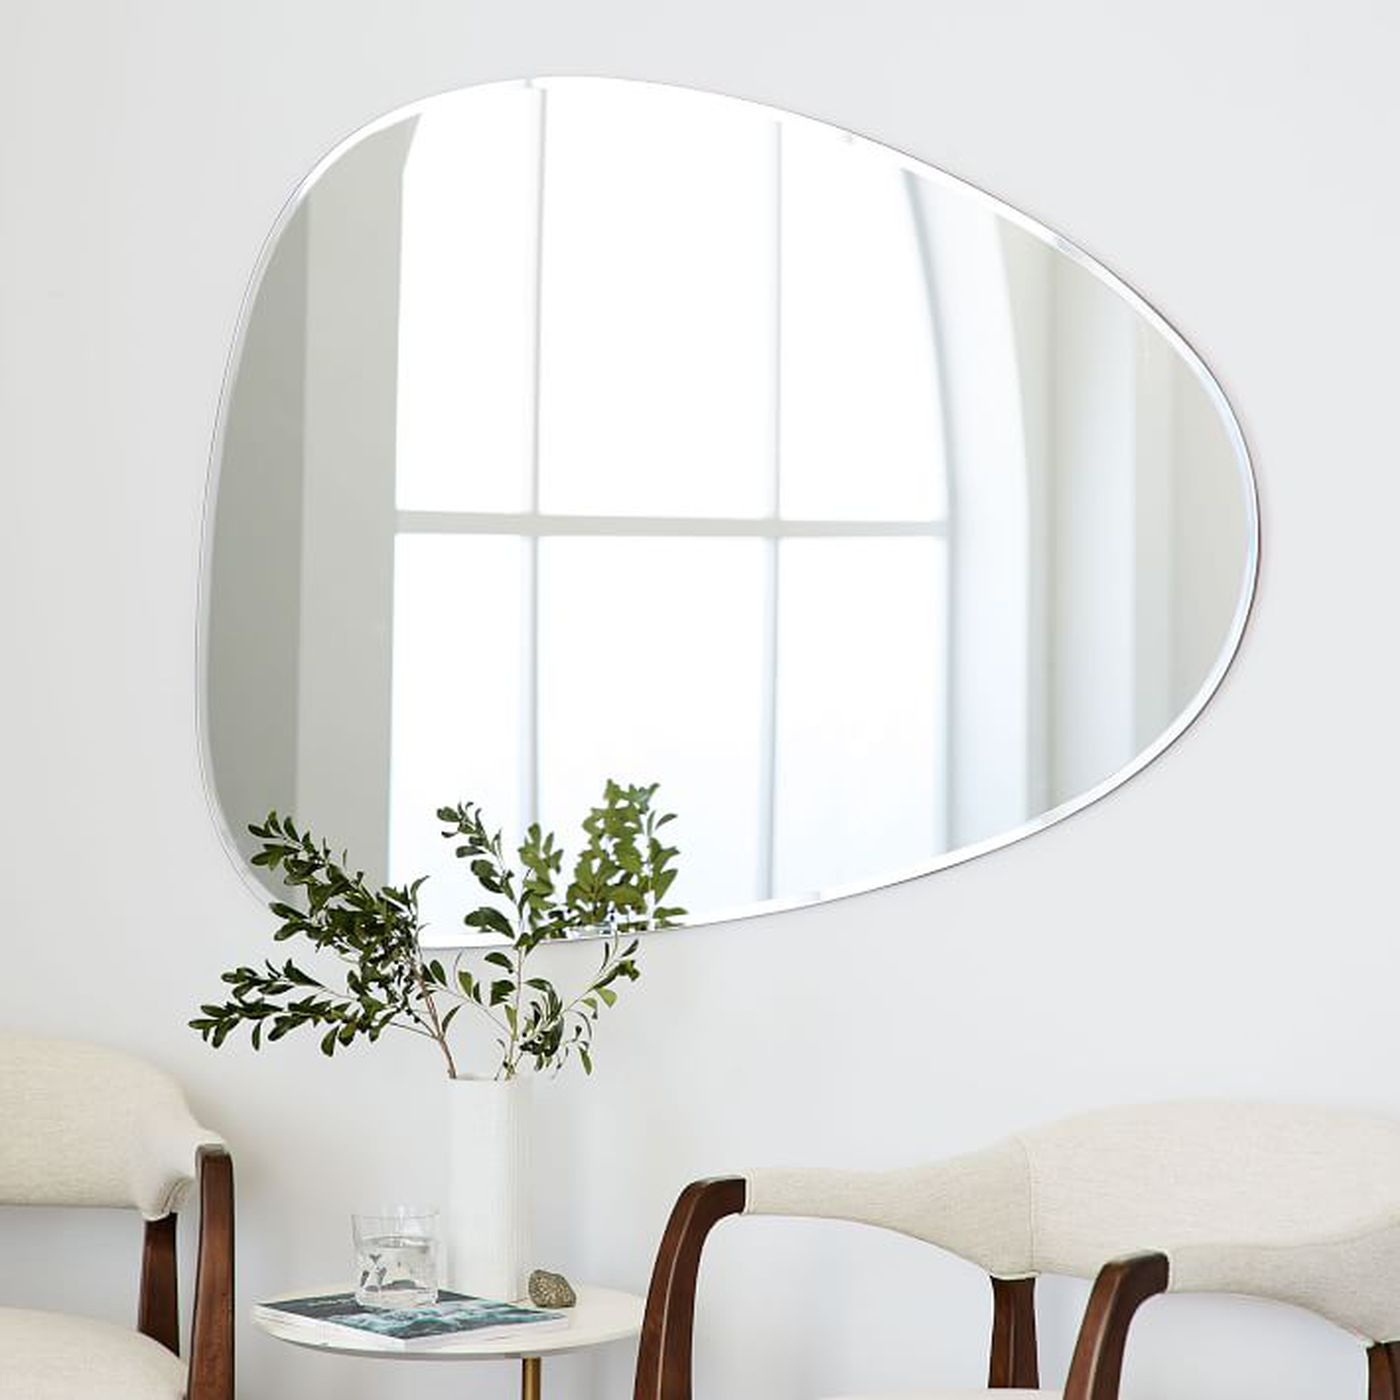 Best mirrors under $100 Curbed